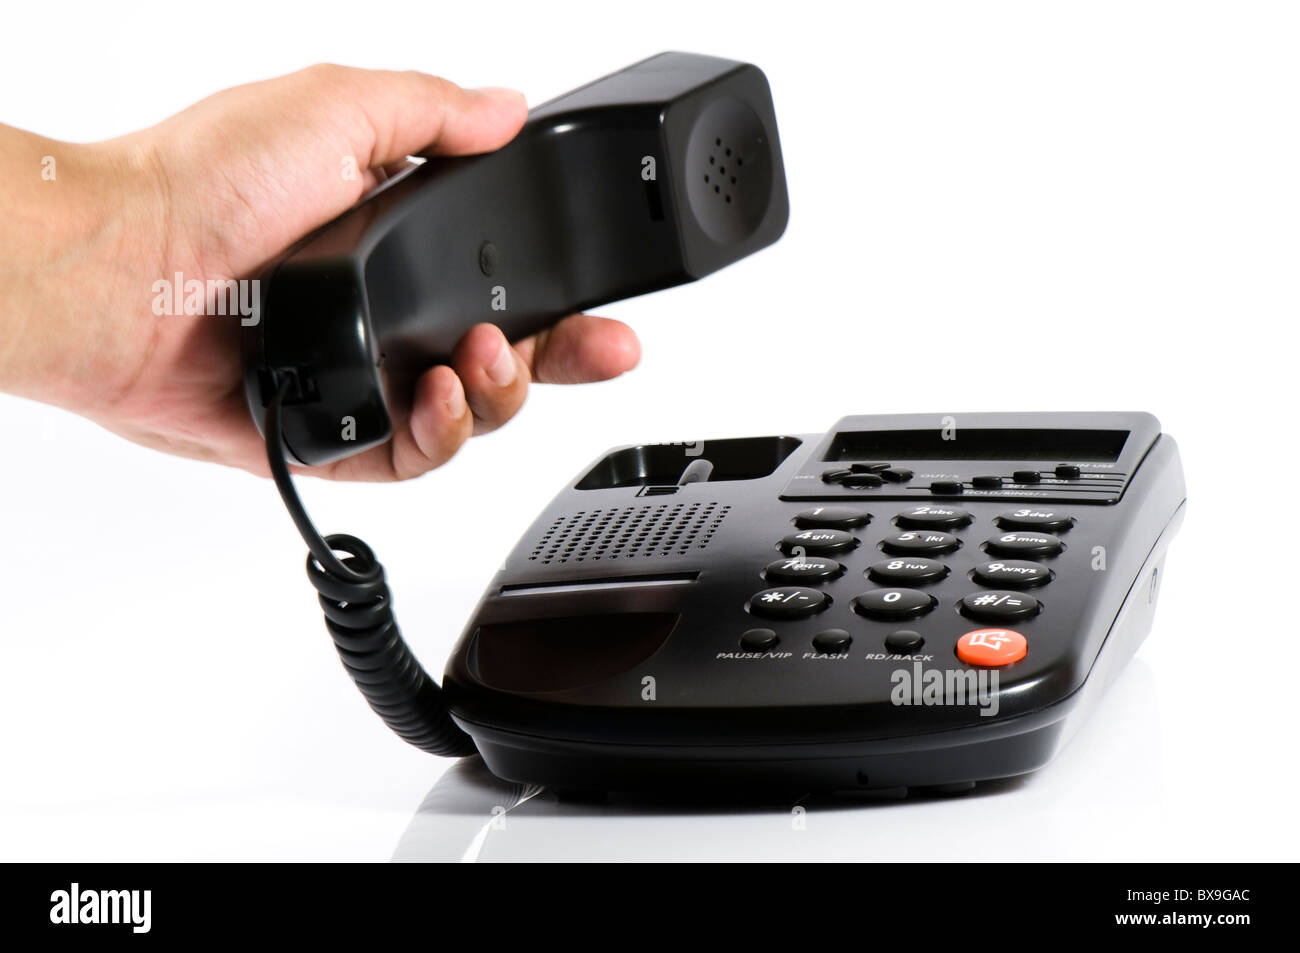 Picking phone receiver cutout, black telephone, white background - Stock Image